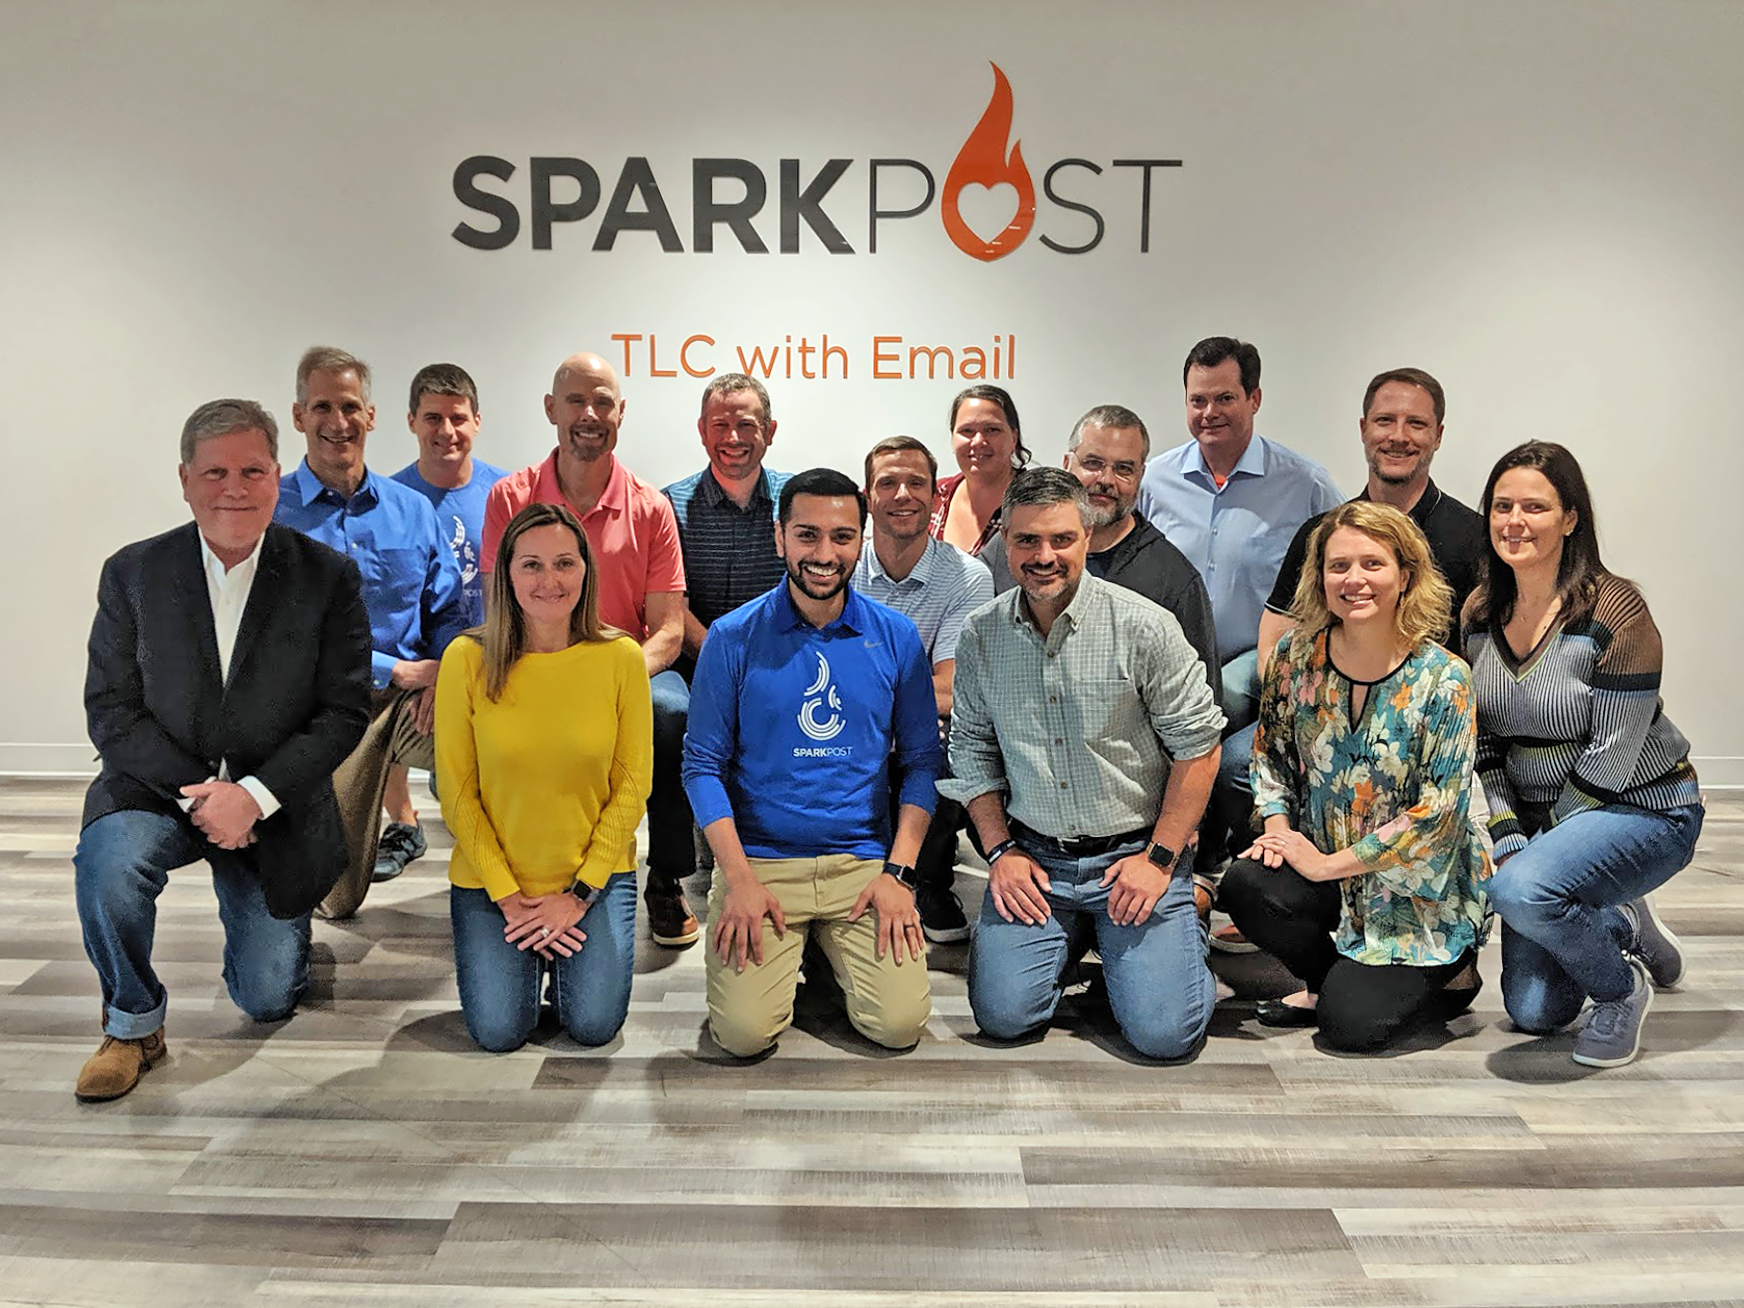 SparkPost Leadership Team